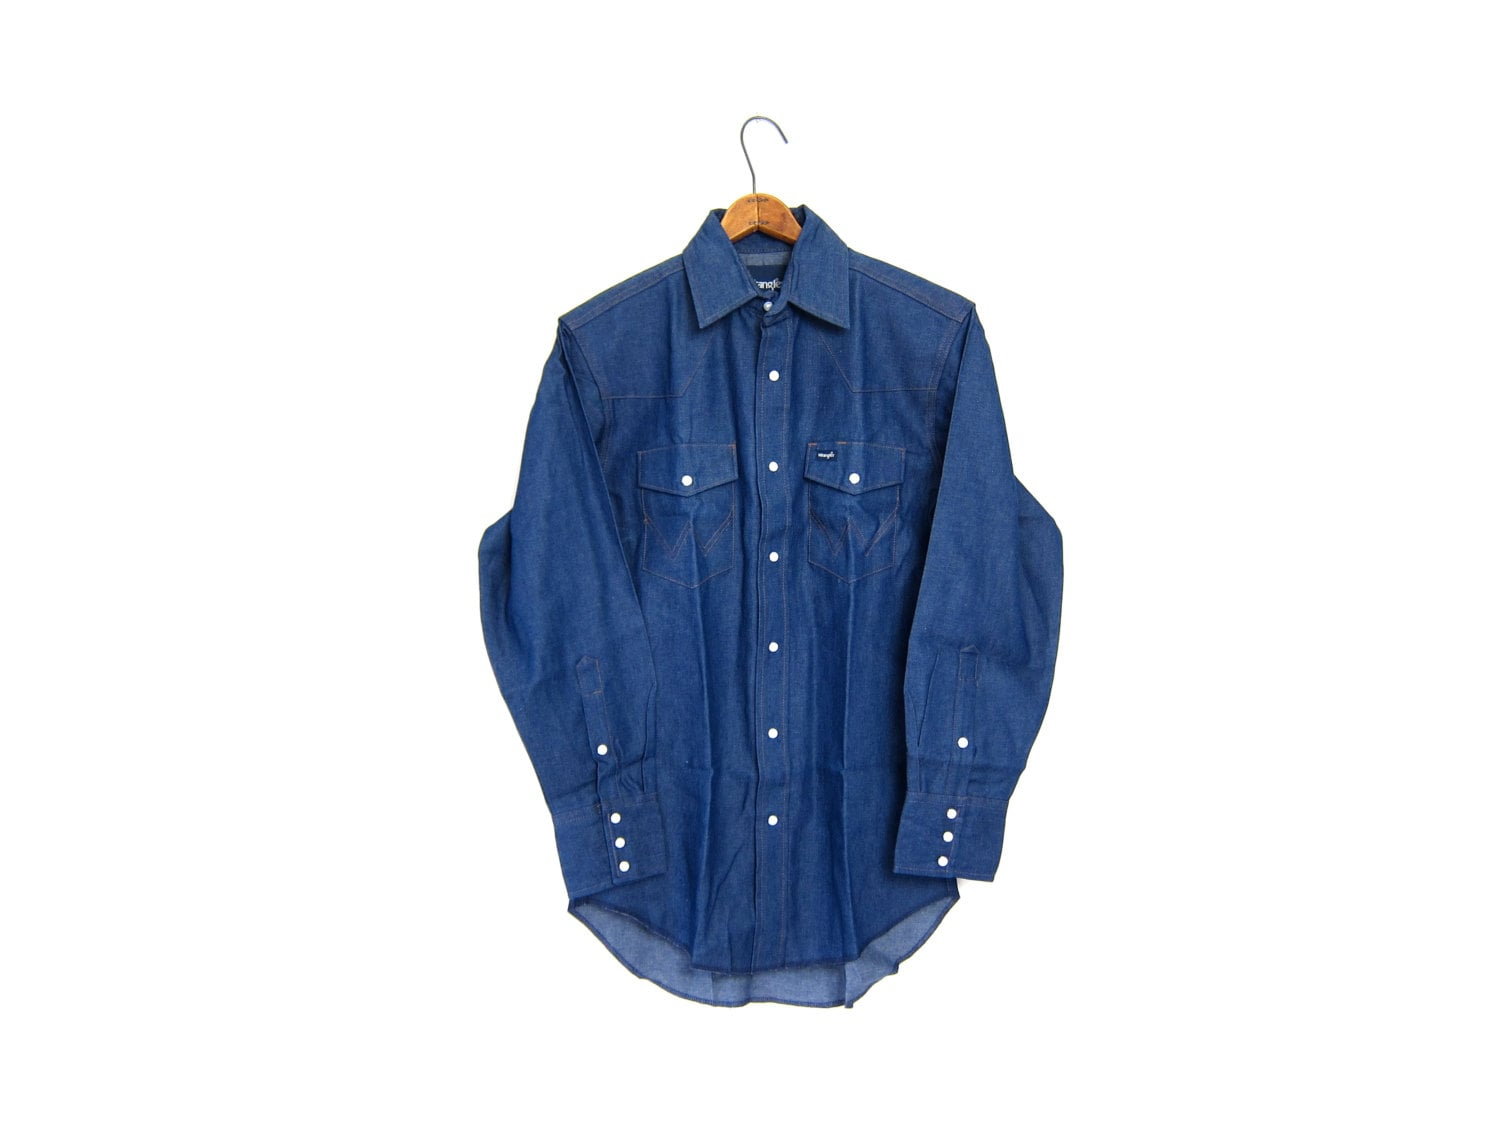 a899d3bd06 Vintage 80s jean shirt PEARL SNAP Western Shirt Wrangler button ...